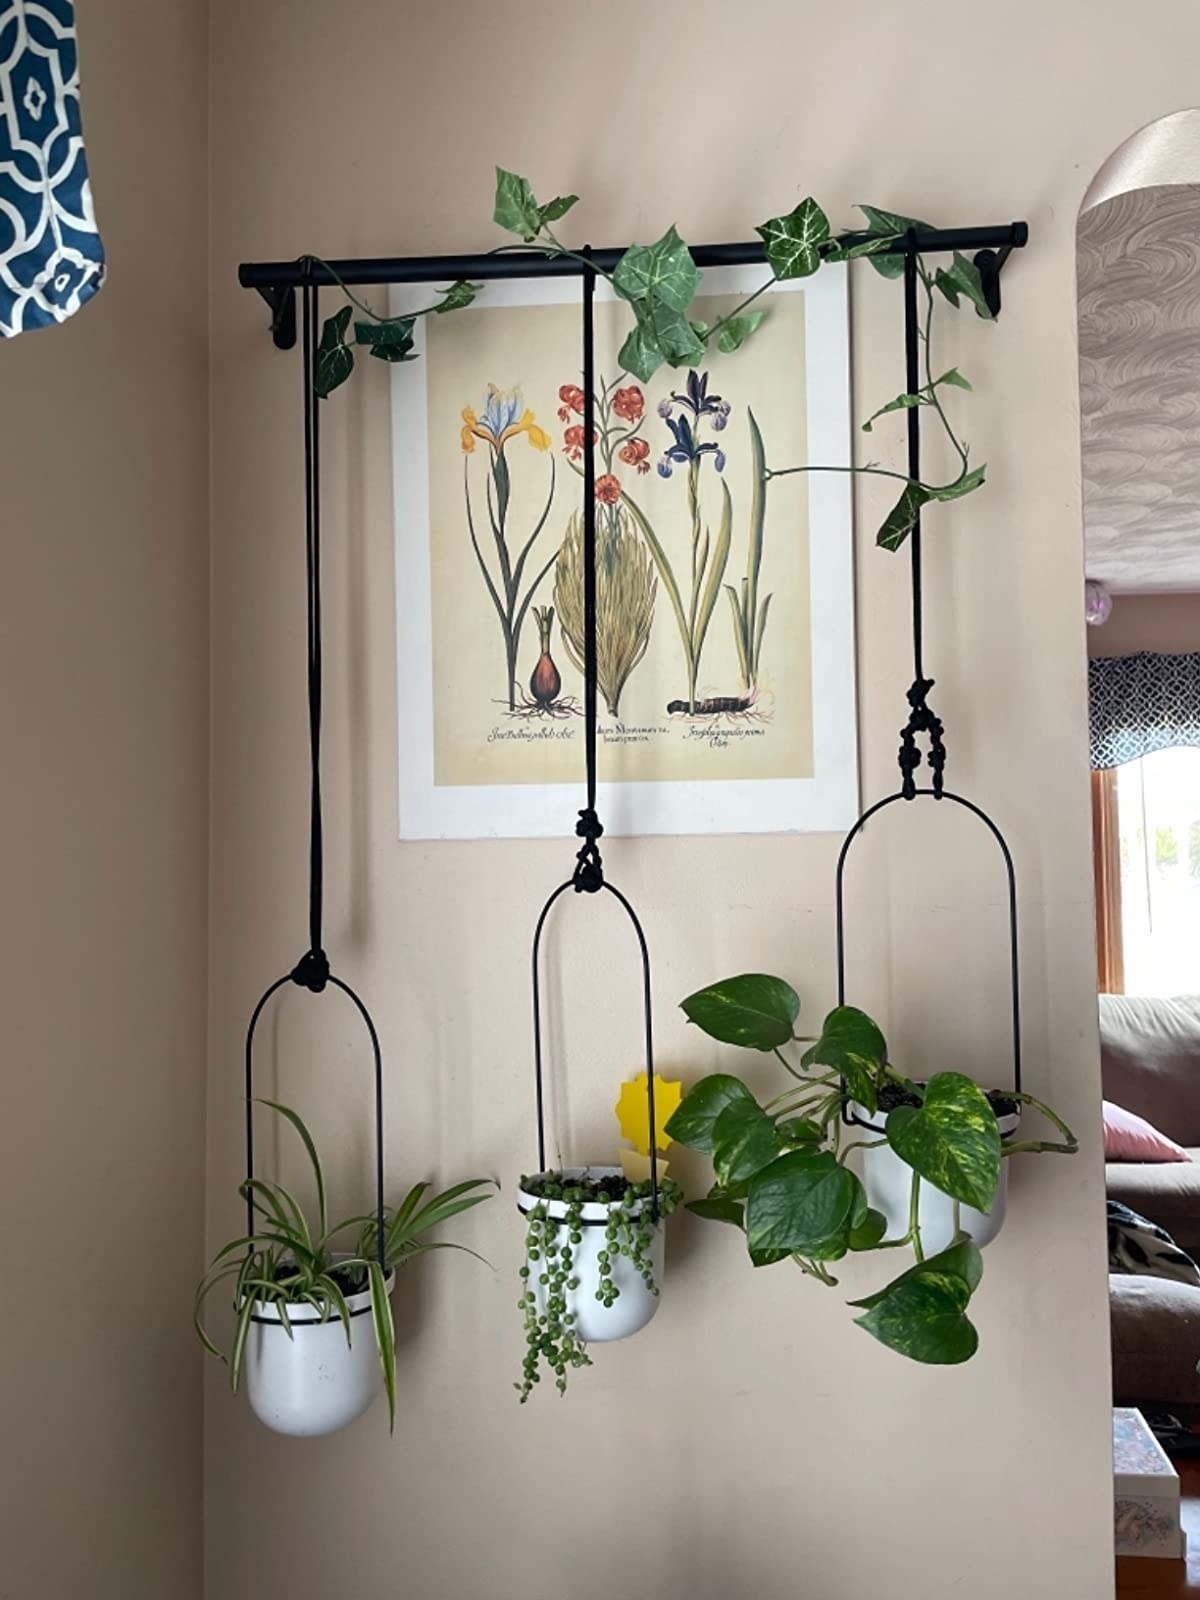 The planter mounted to a wall with three pots hanging down at various lengths